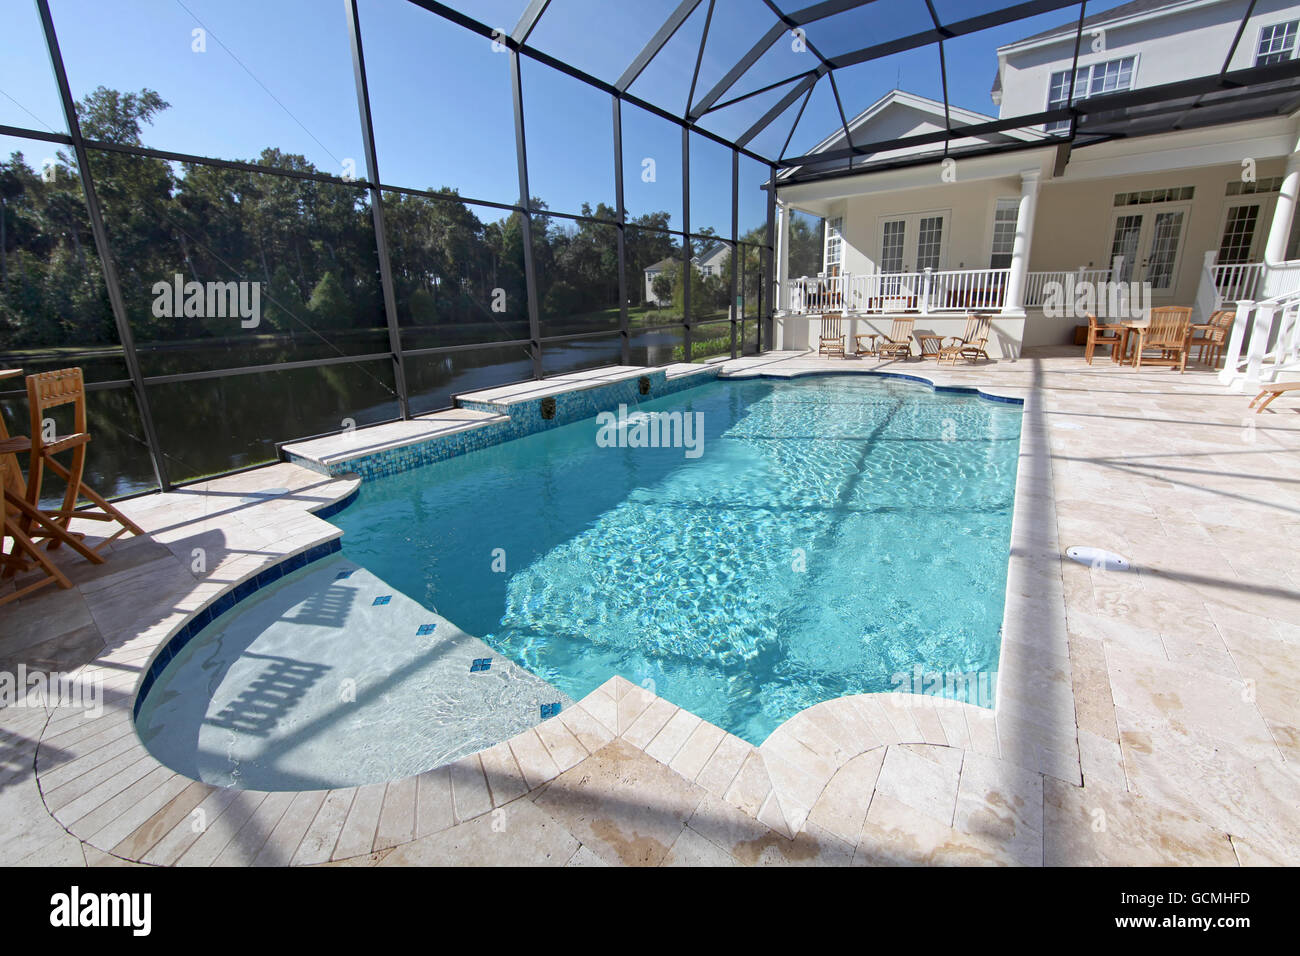 A Swimming Pool Area At A Large Home Stock Photo 111090881 Alamy